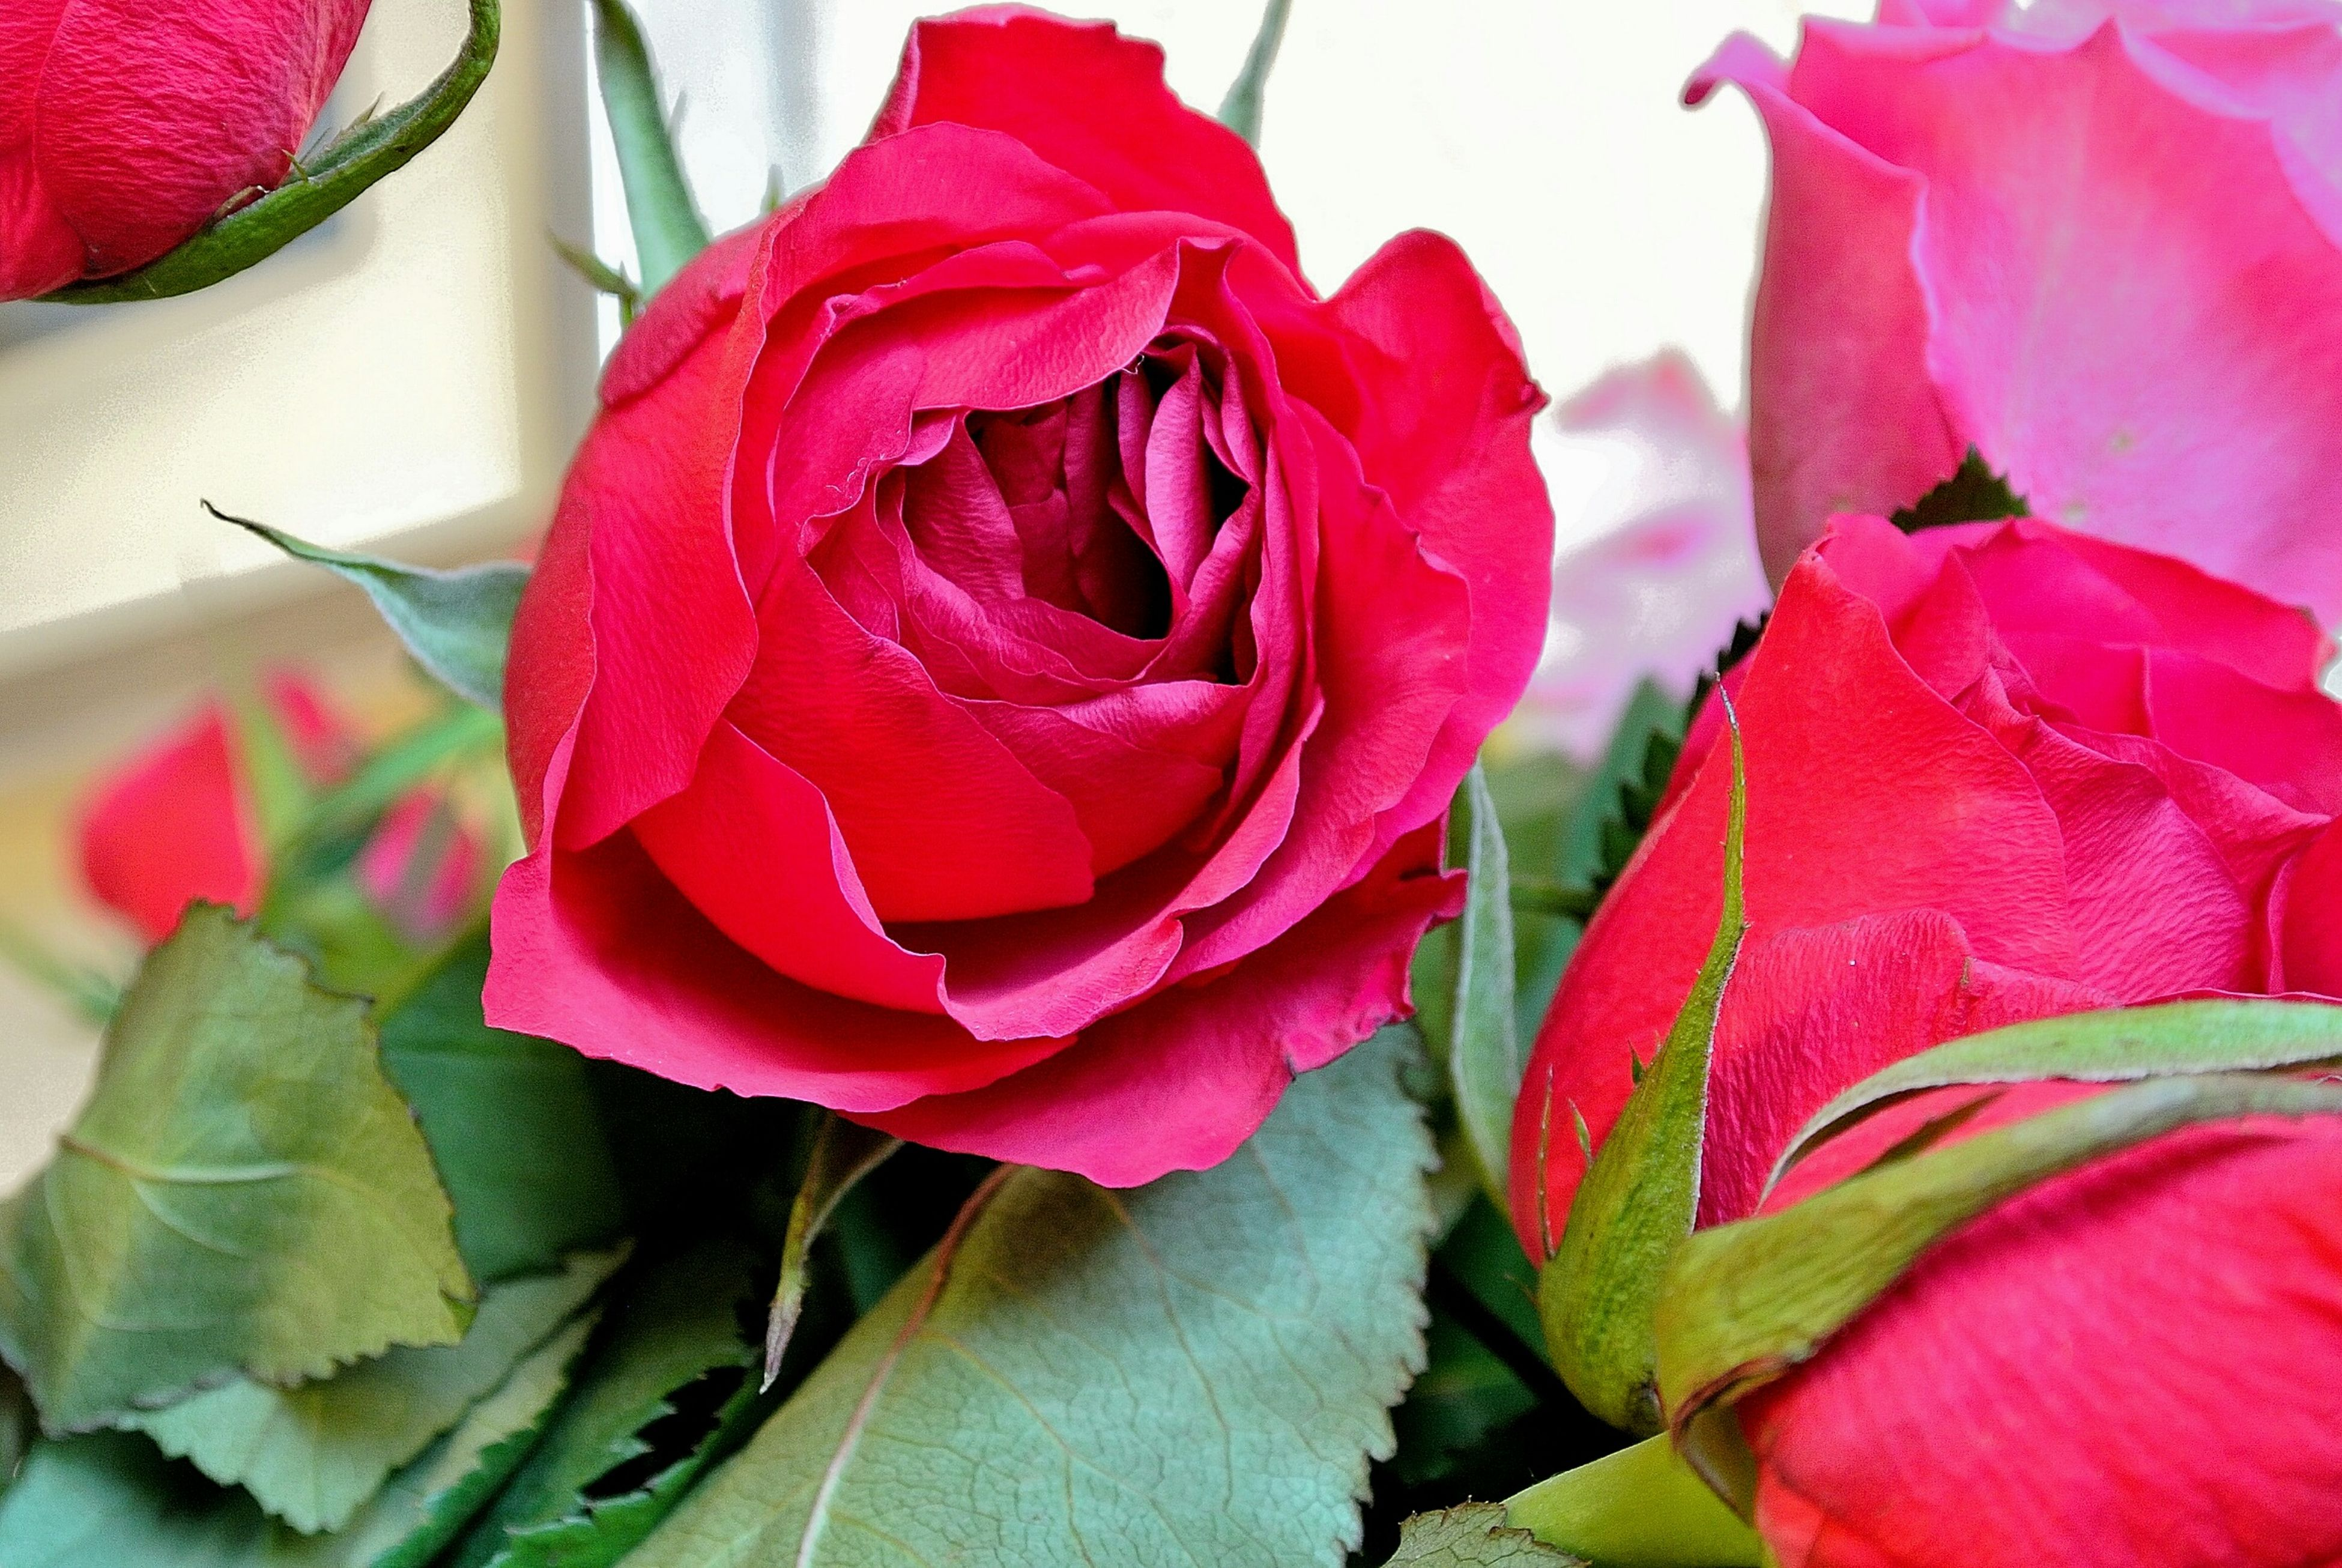 flower, petal, freshness, rose - flower, fragility, flower head, beauty in nature, pink color, close-up, growth, red, leaf, rose, nature, plant, blooming, pink, indoors, softness, in bloom